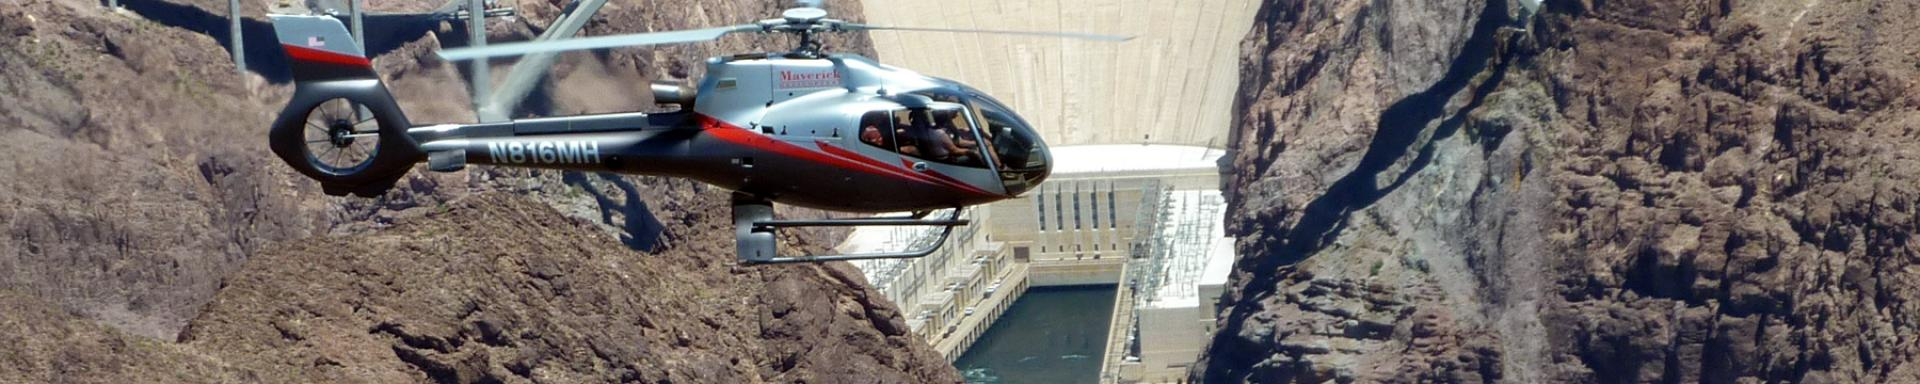 Save over £45 per person on Wind Dancer Helicopter Flights!